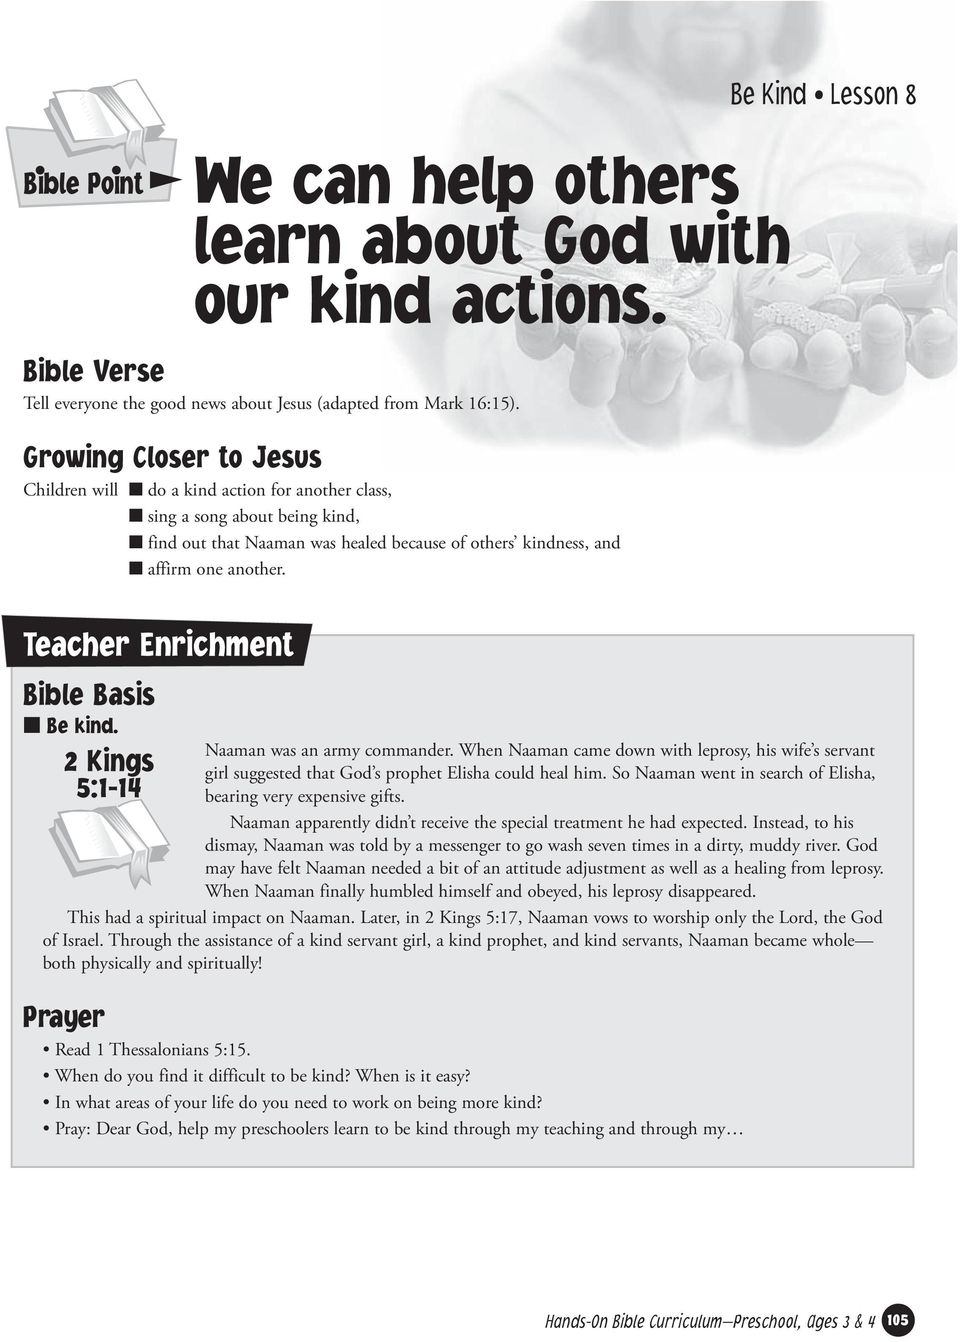 We can help others learn about God with our kind actions  - PDF